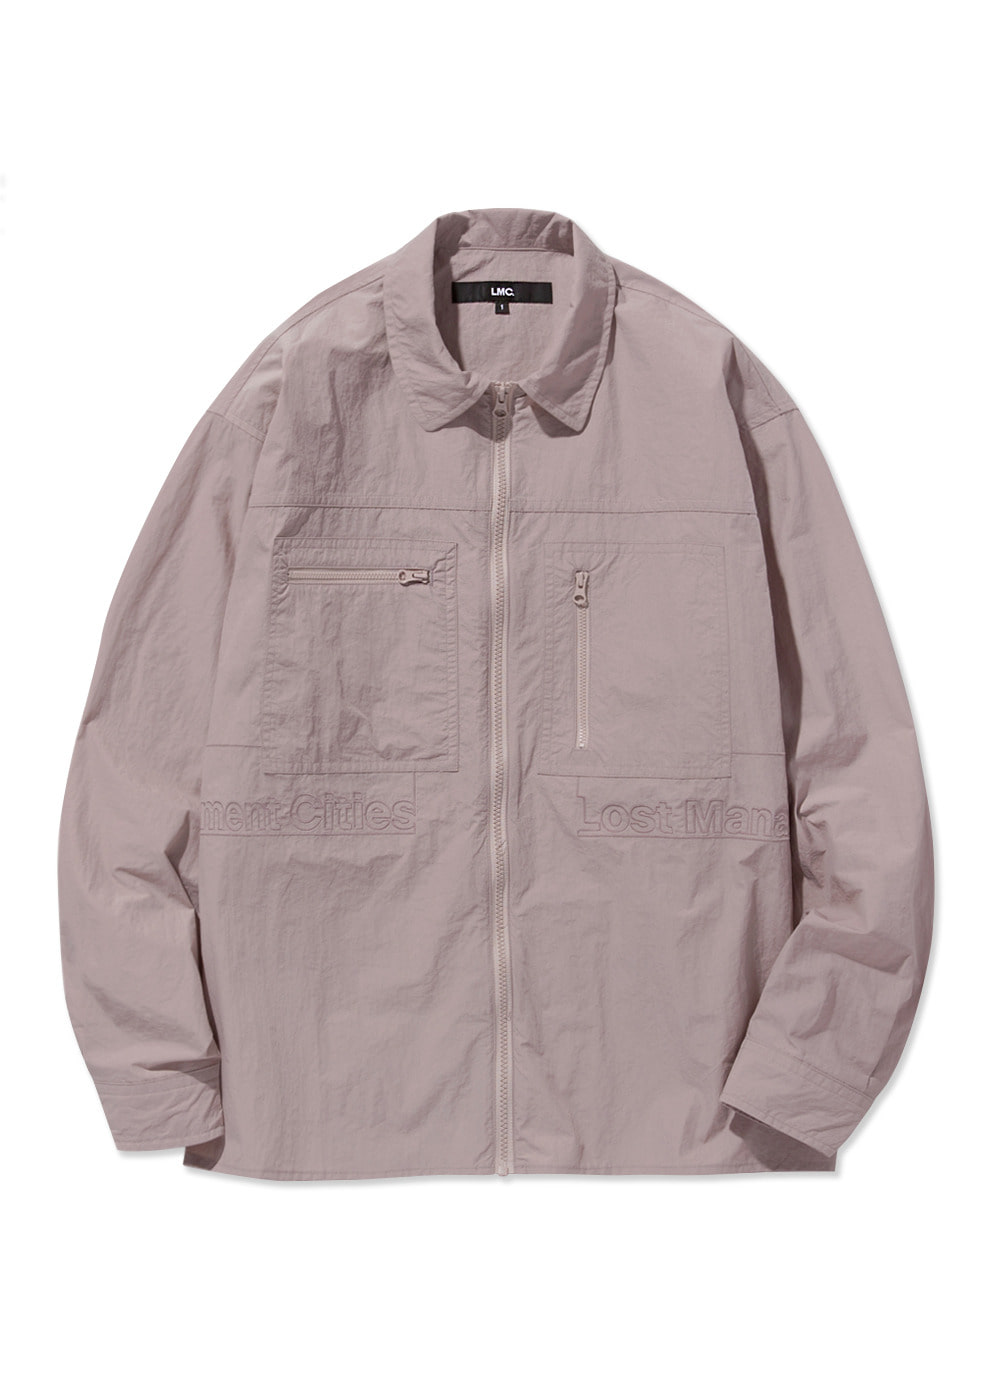 20SS LMC FULL ZIP WORK SHIRT pink